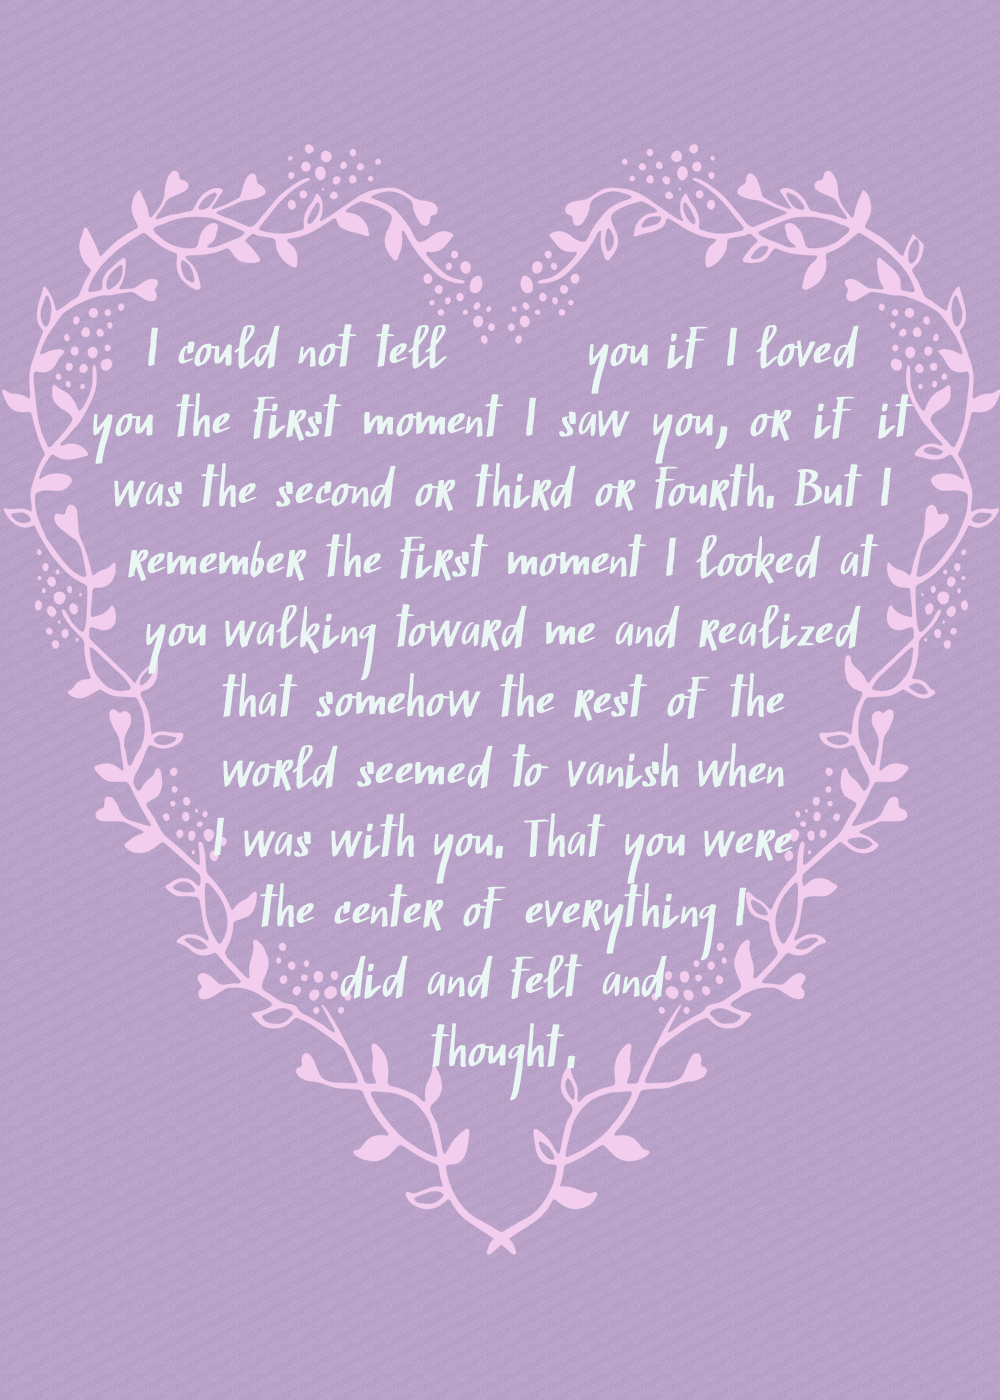 clockwork prince quote - i could not tell you if i loved you the first moment i saw you